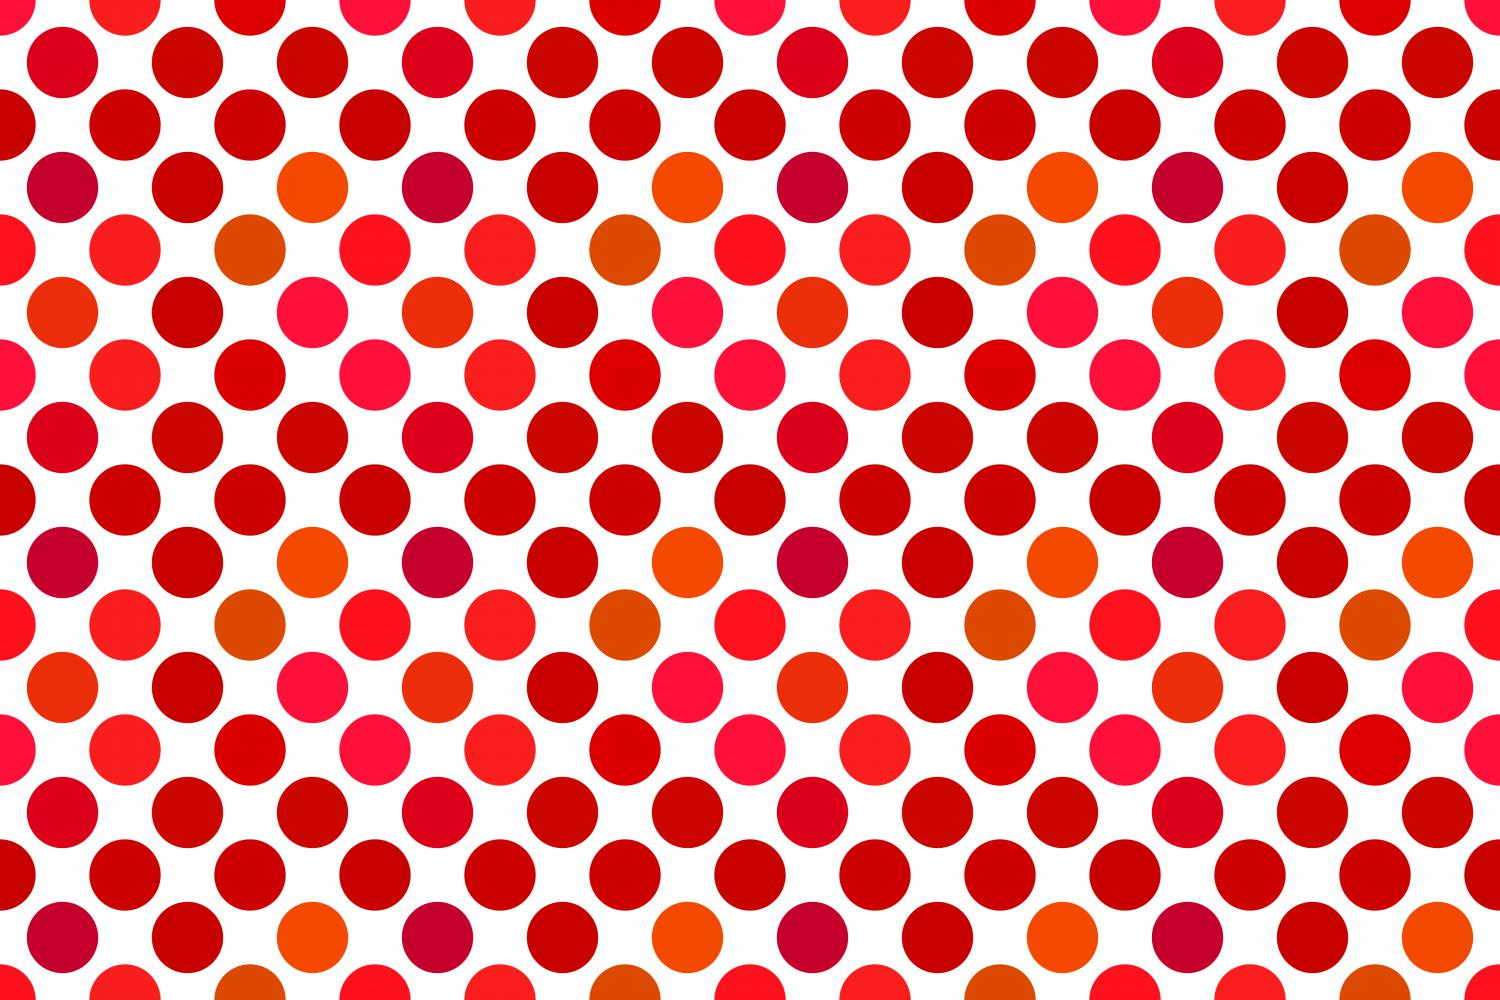 24 Seamless Red Dot Patterns example image 2